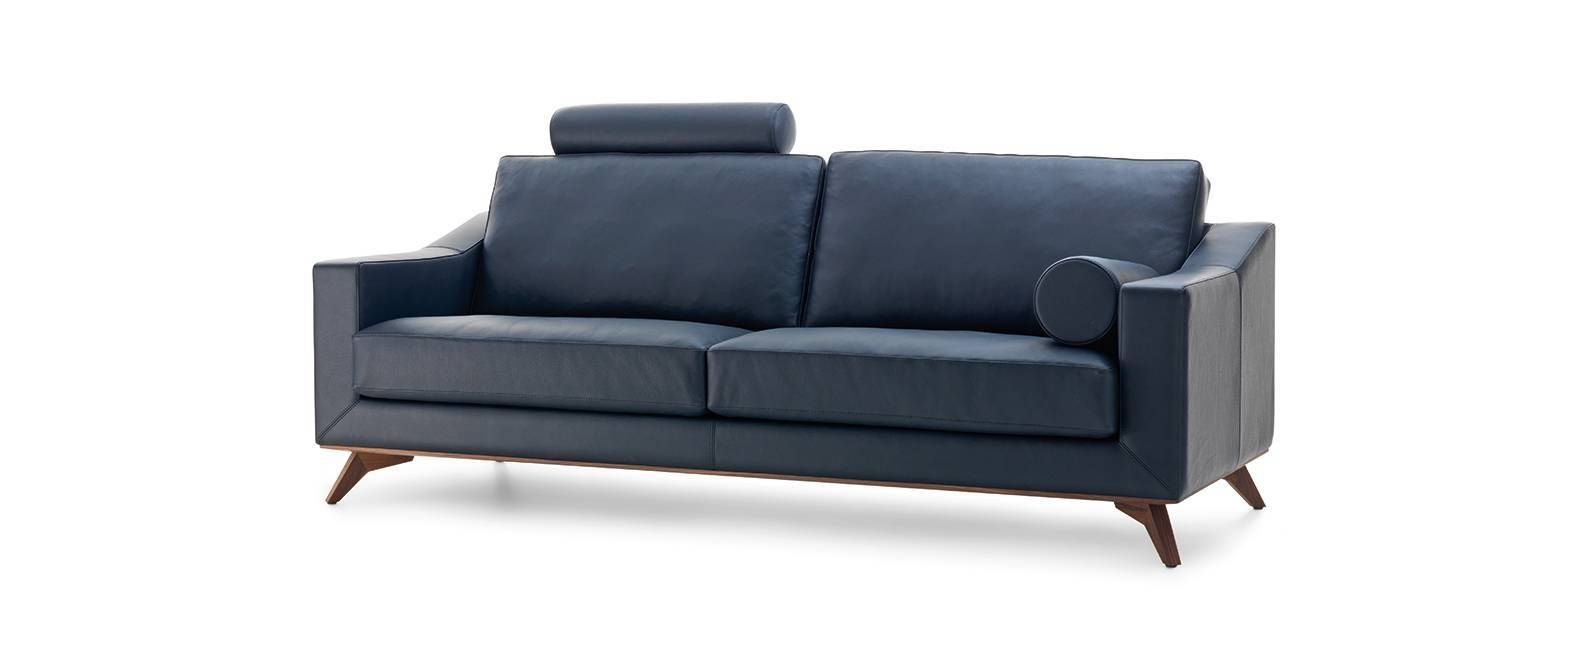 Bettsofa Interio Ch Design Sofa Antonia Adore By Leolux Sofasticated Sofa Design